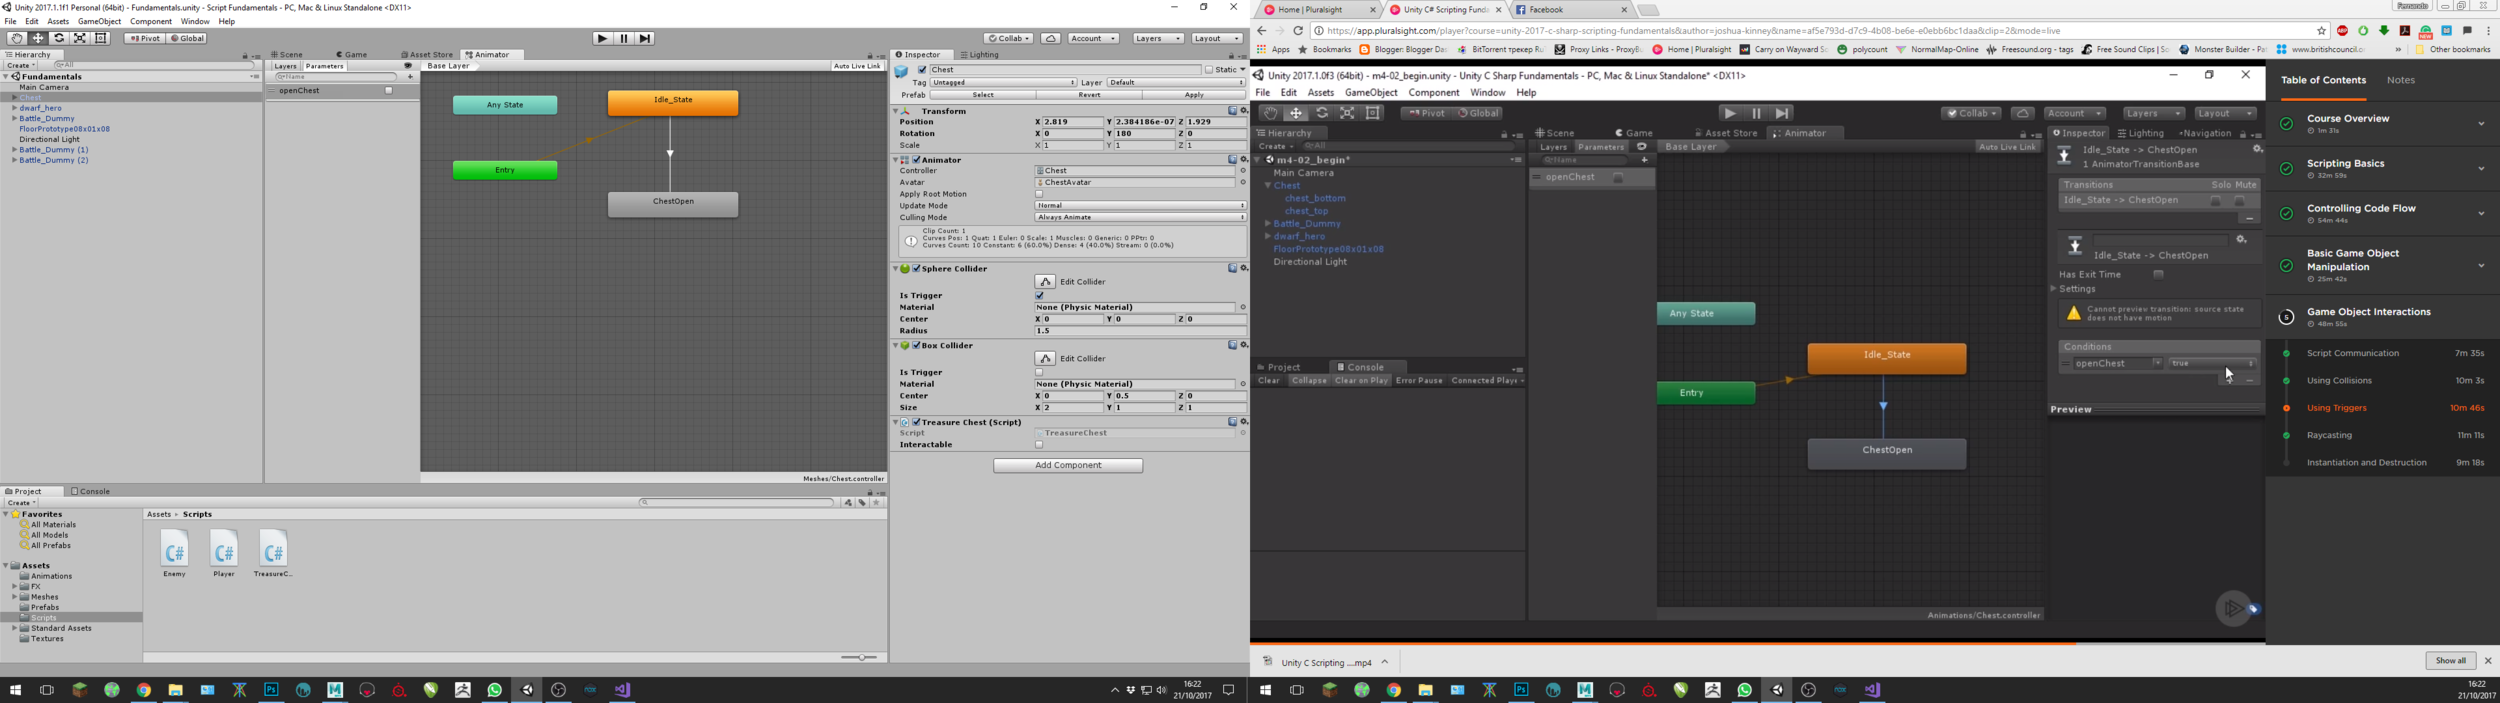 Learning the Animator tool in Unity to link the animated chest with the action of opening the chest